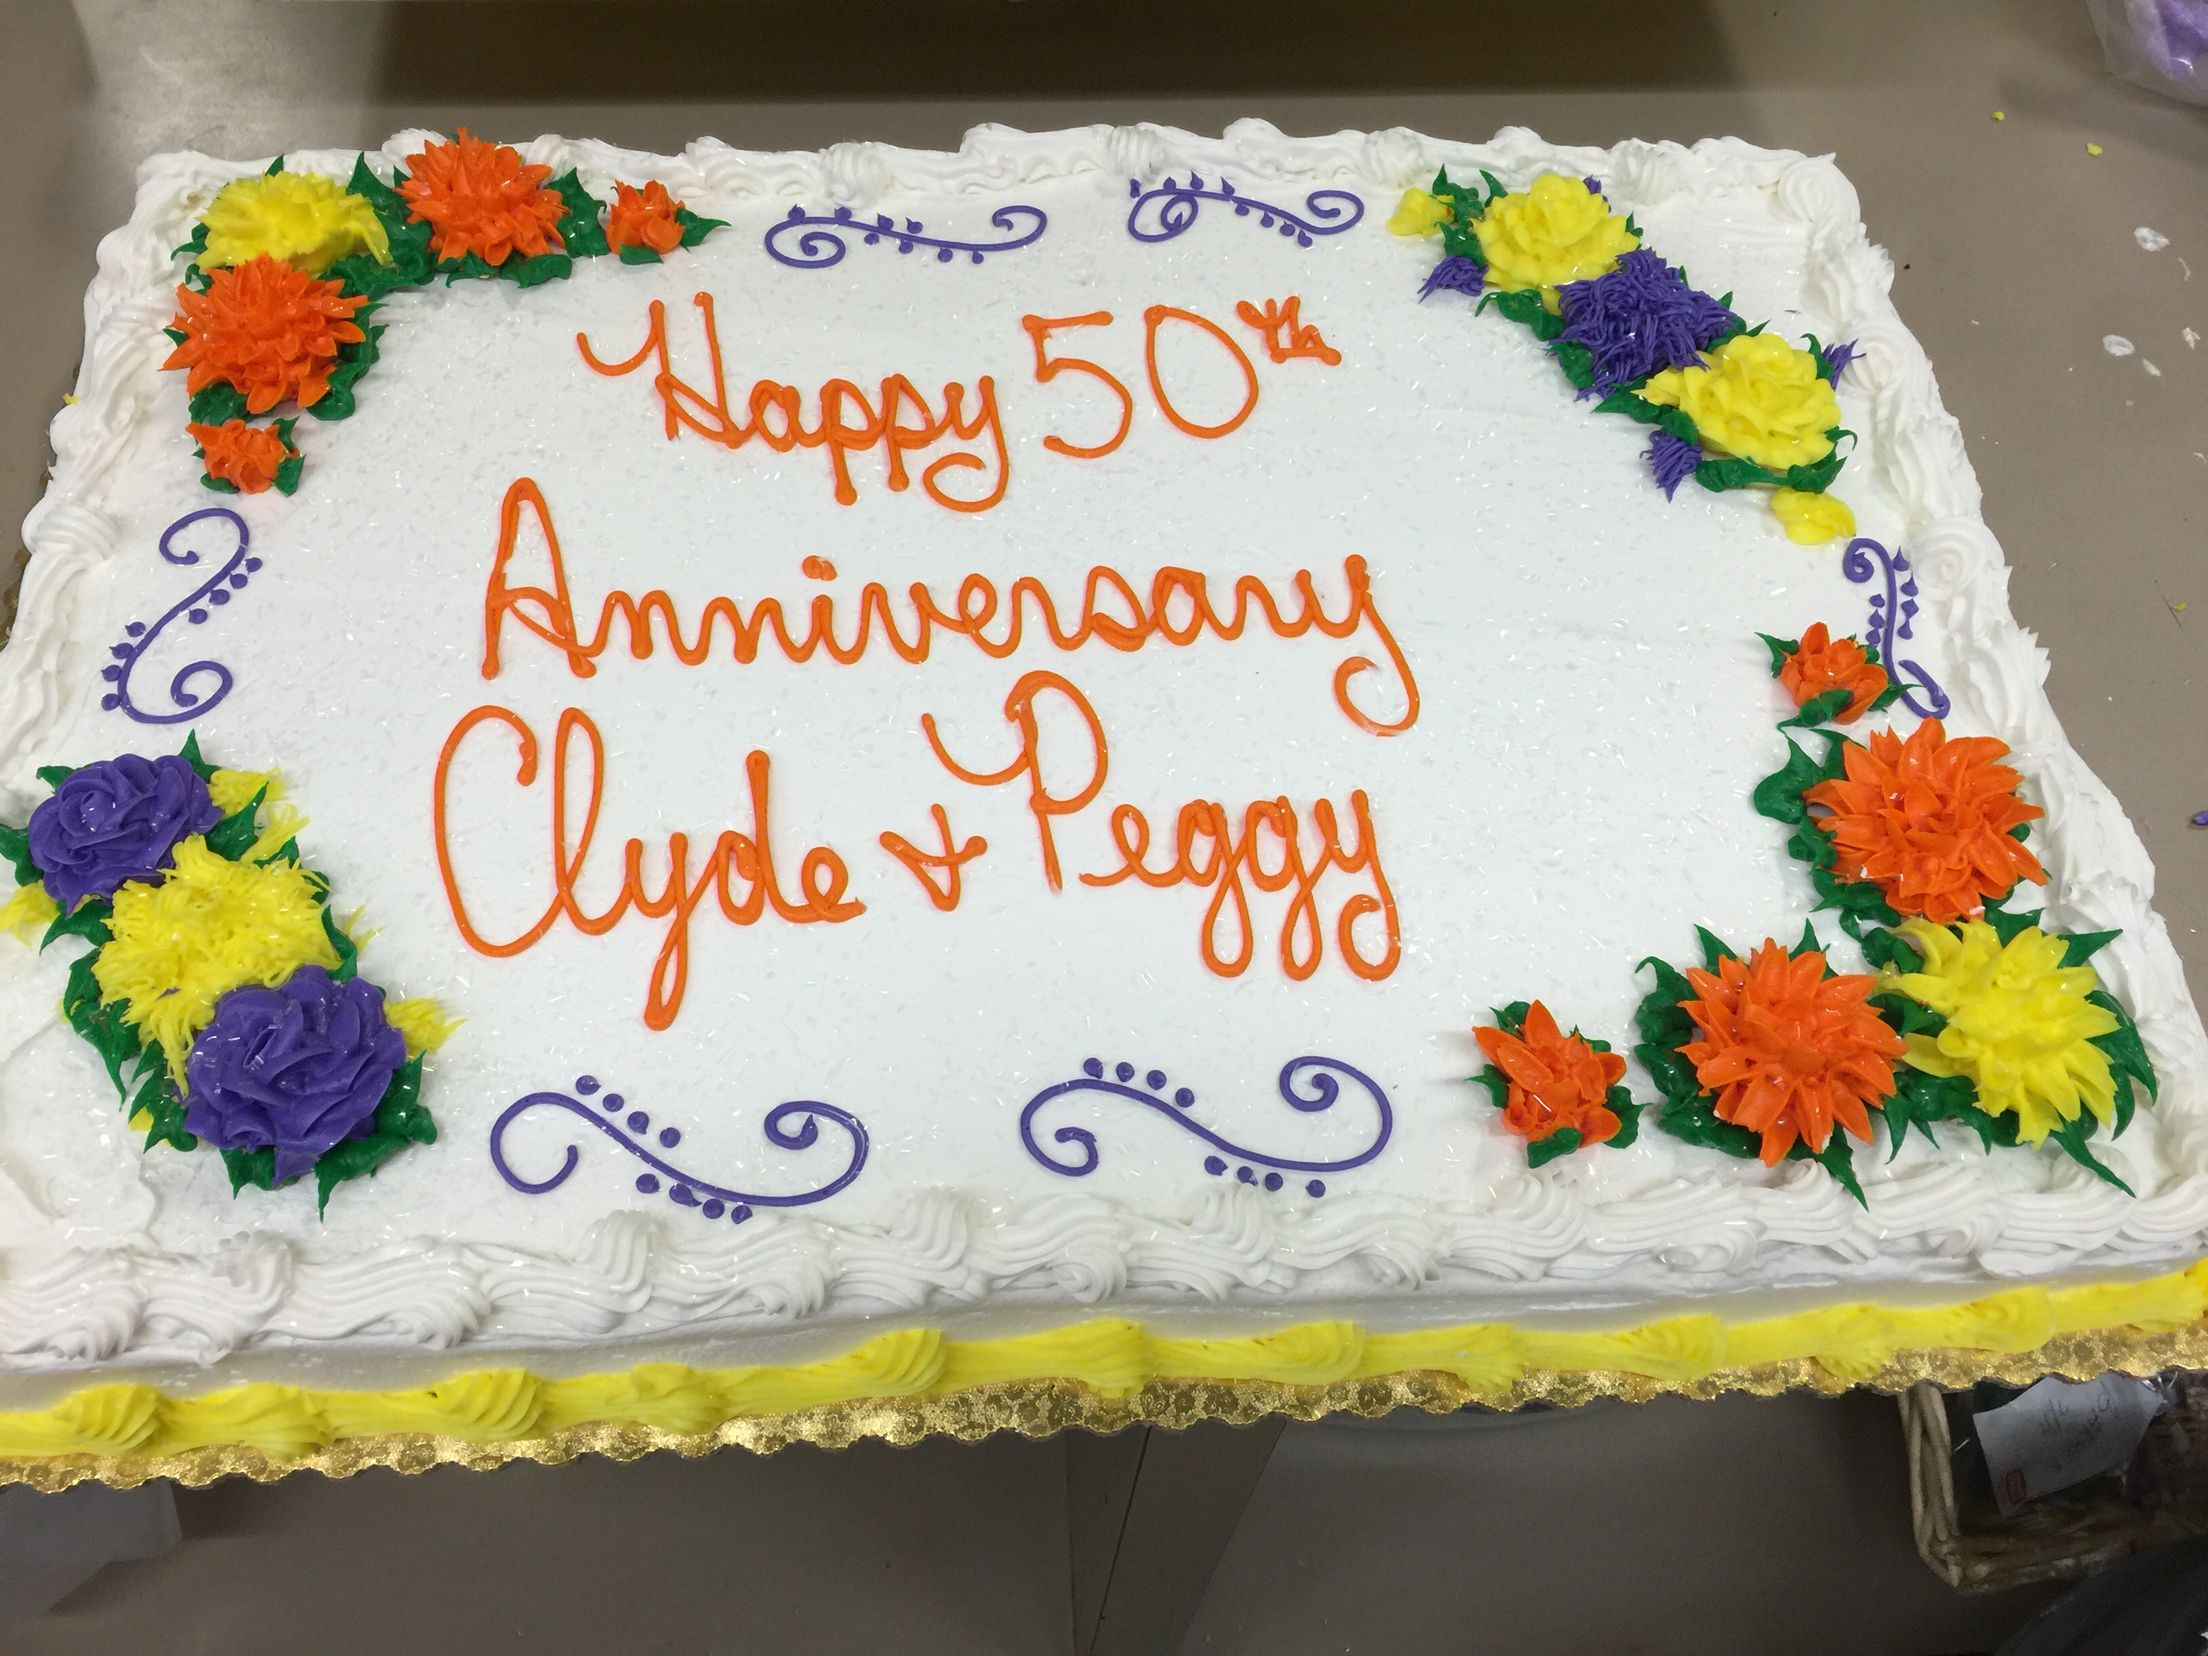 Anniversary Cake Giant Eagle Cakes Desserts Food Tailgate